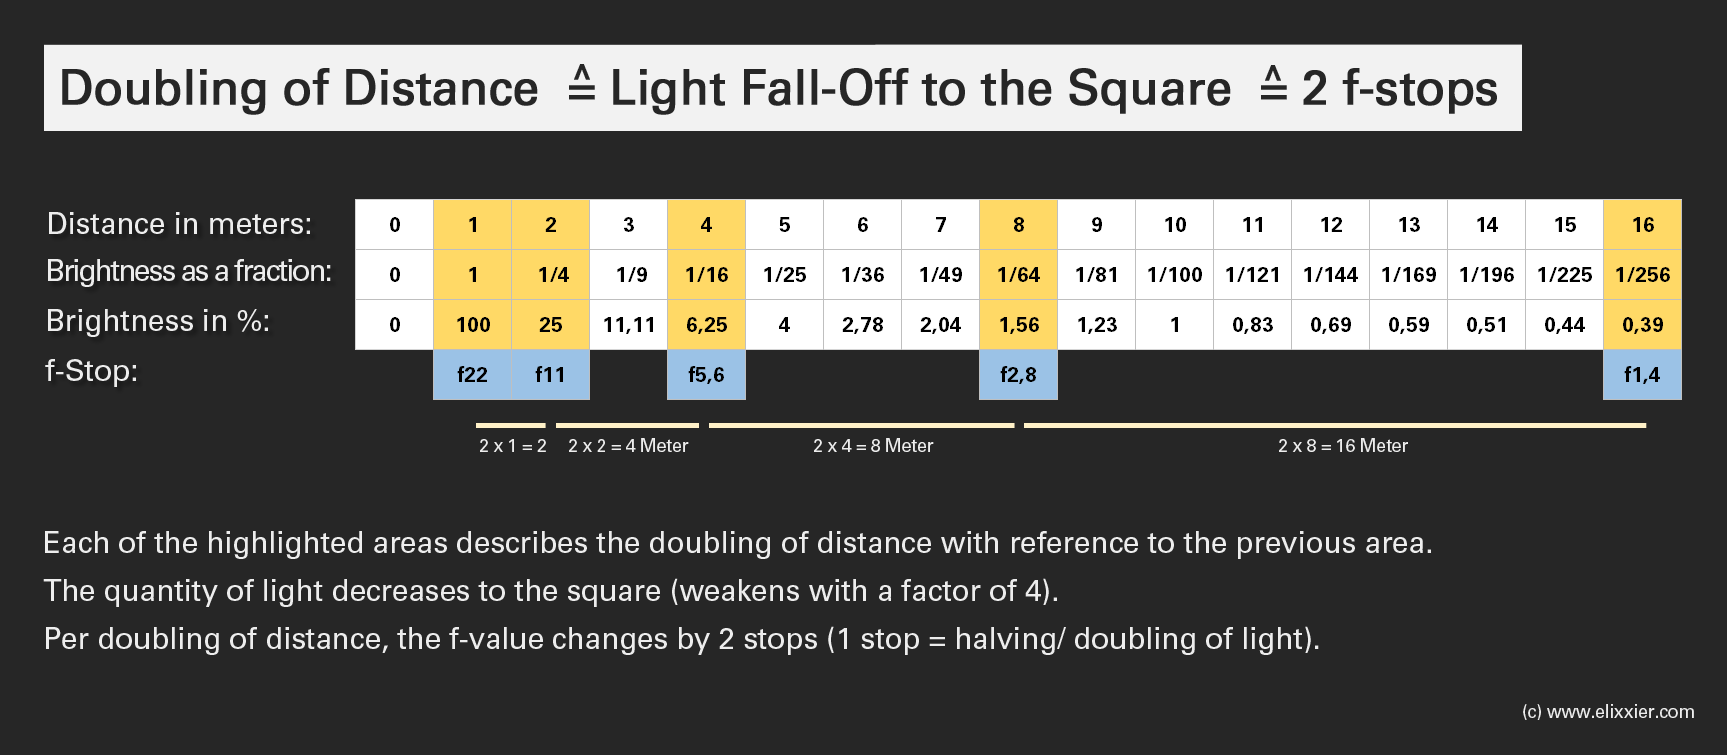 Overview-Light-Fall-Off-to-the-Square